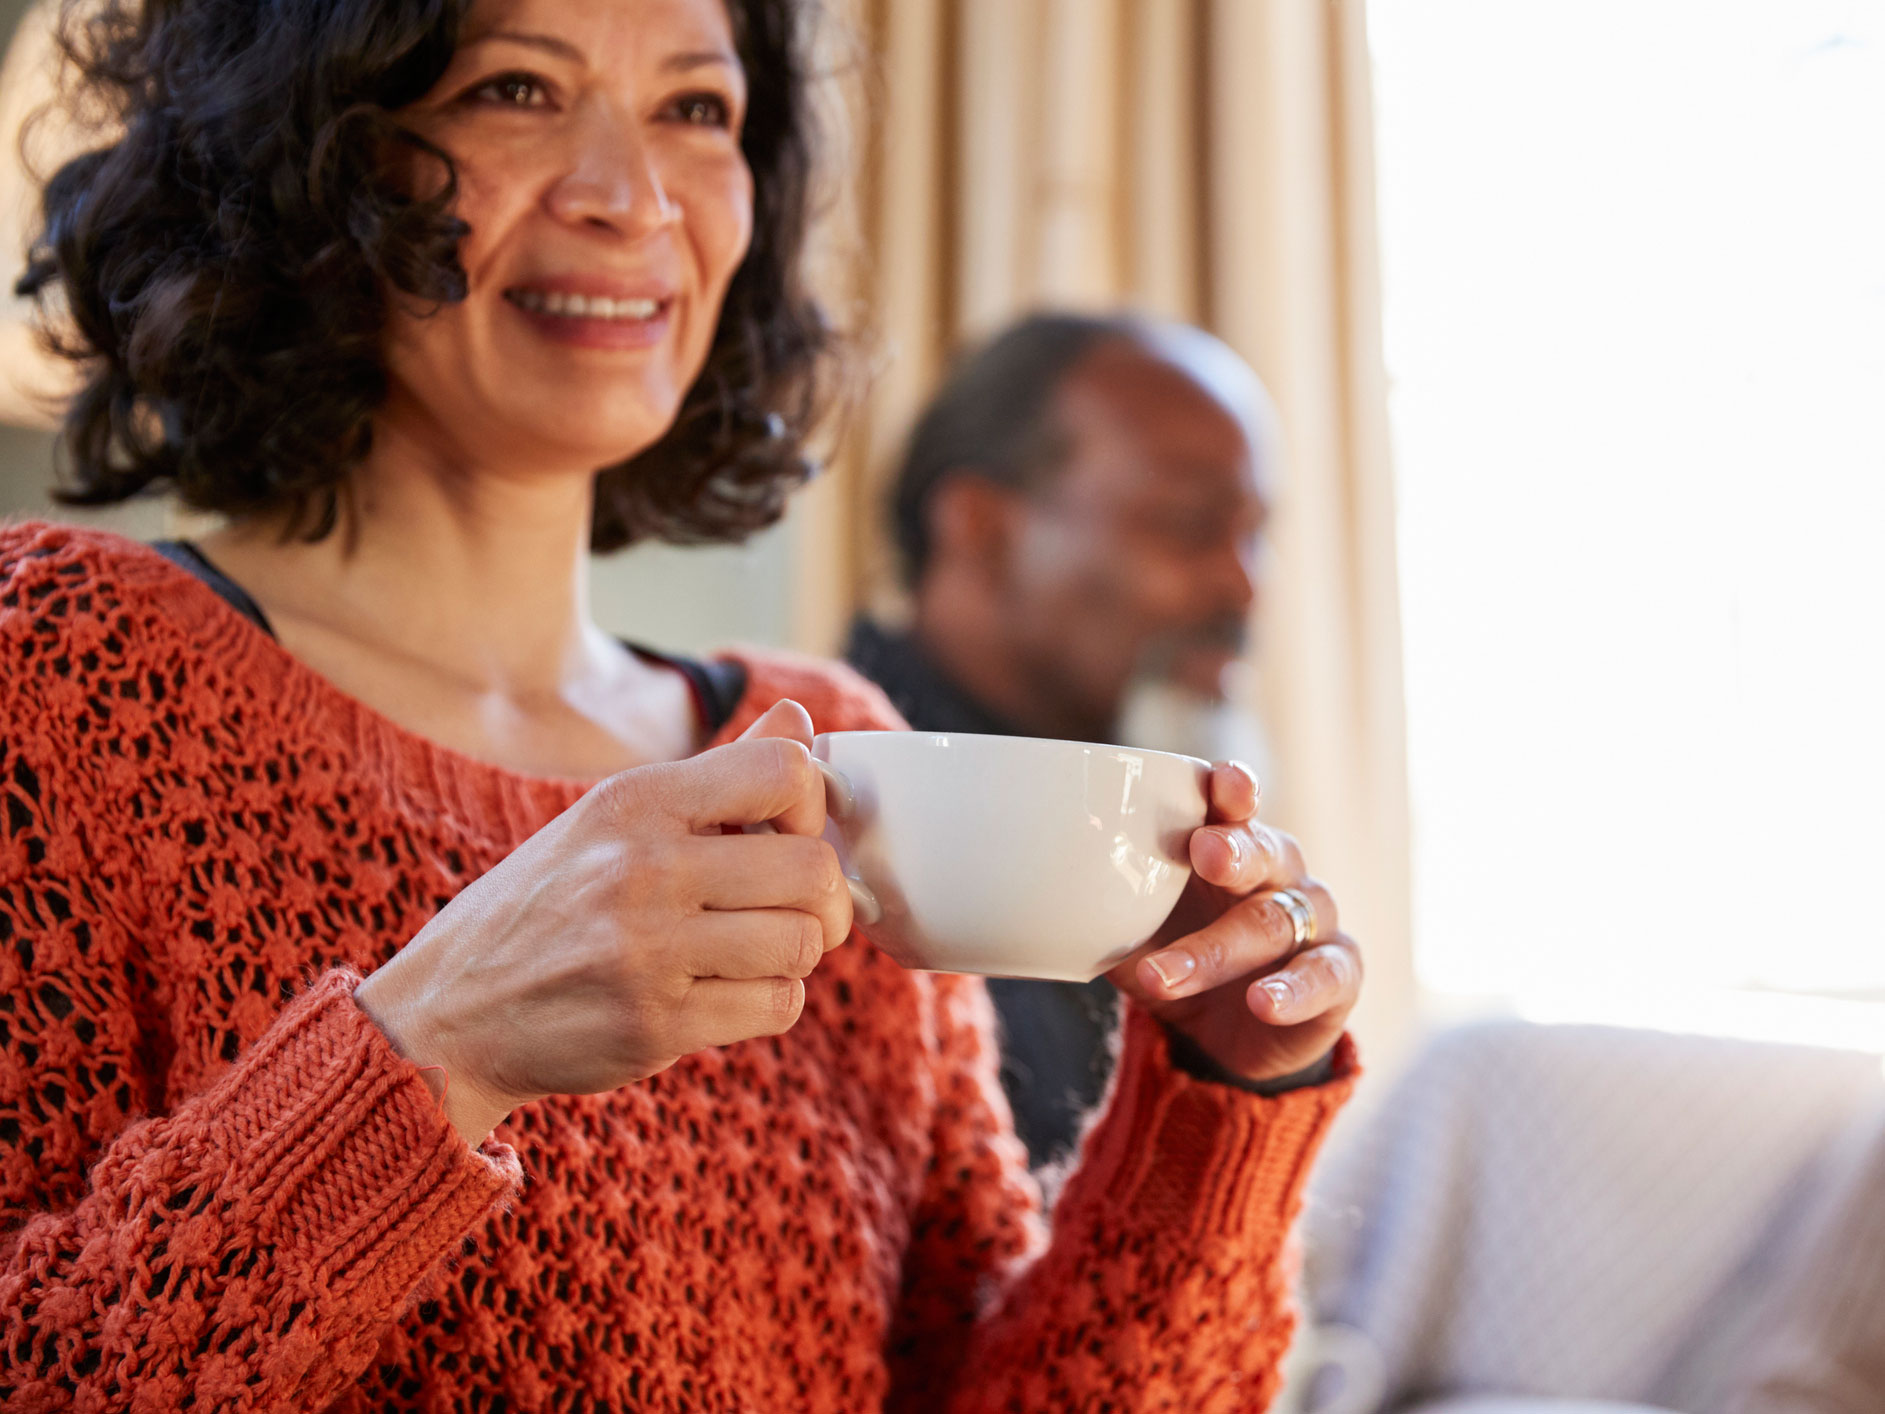 Drink coffee and lower the thermostat to burn more body fat